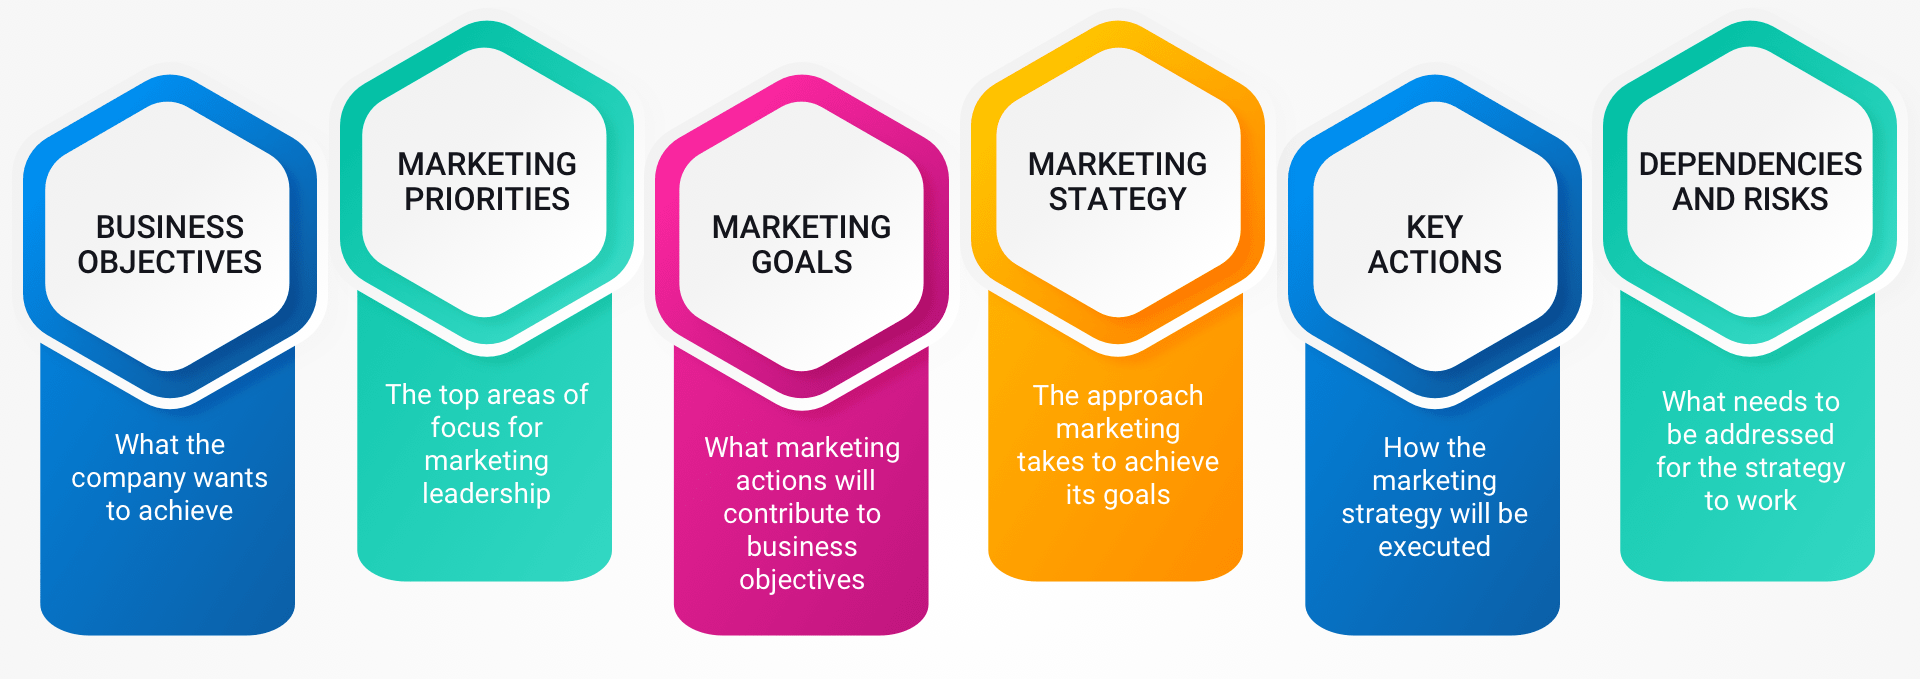 marketing plan for startup company